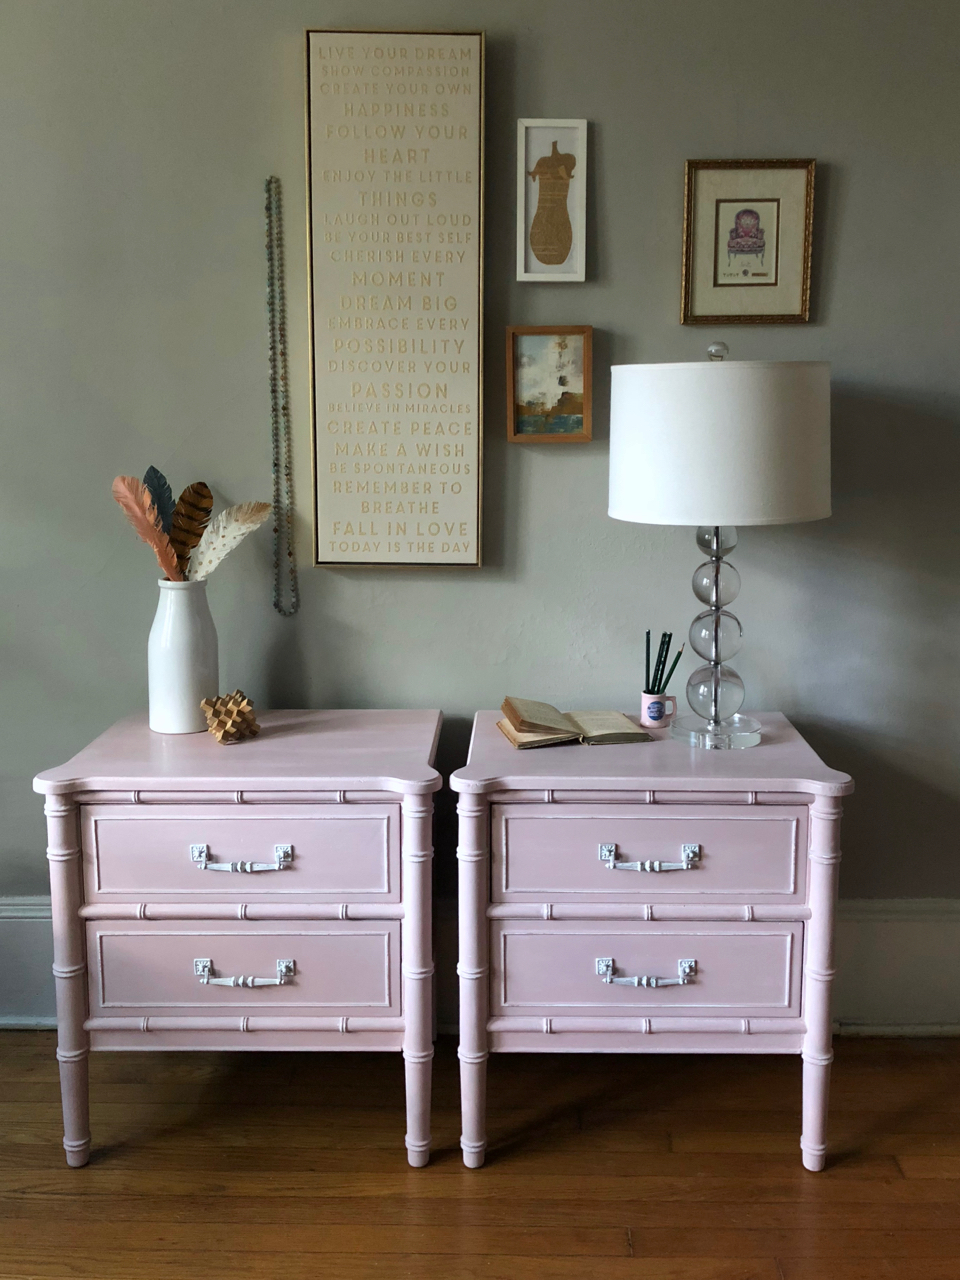 jo-torrijos-atlanta-painted-furniture-annie-sloan-antoinette-blush-pink-nightstands-1.jpg